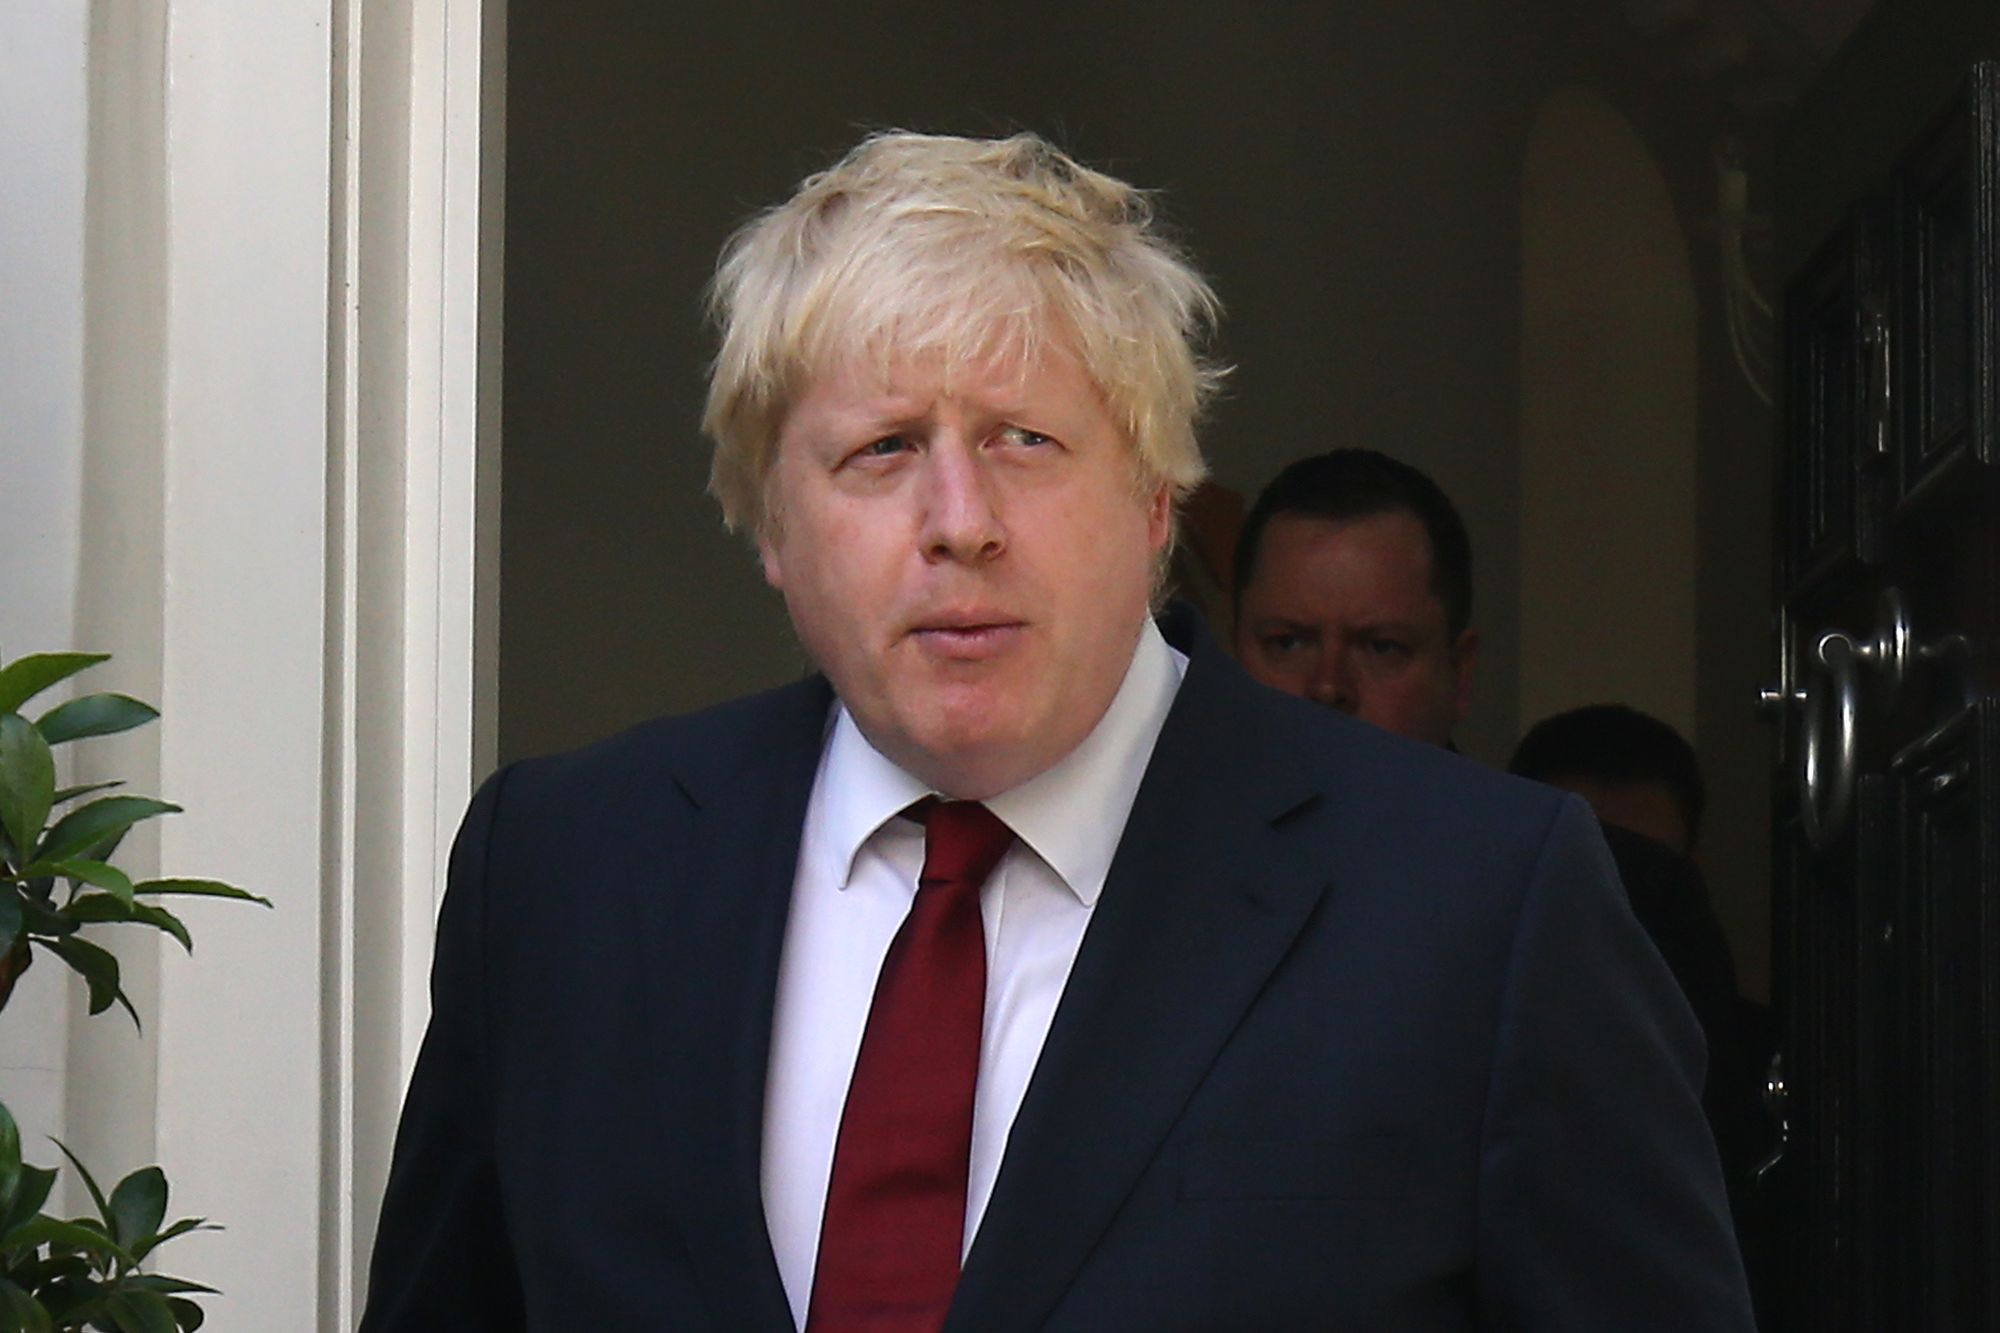 Boris Johnson était le favori des bookmakers pour succéder à David Cameron.